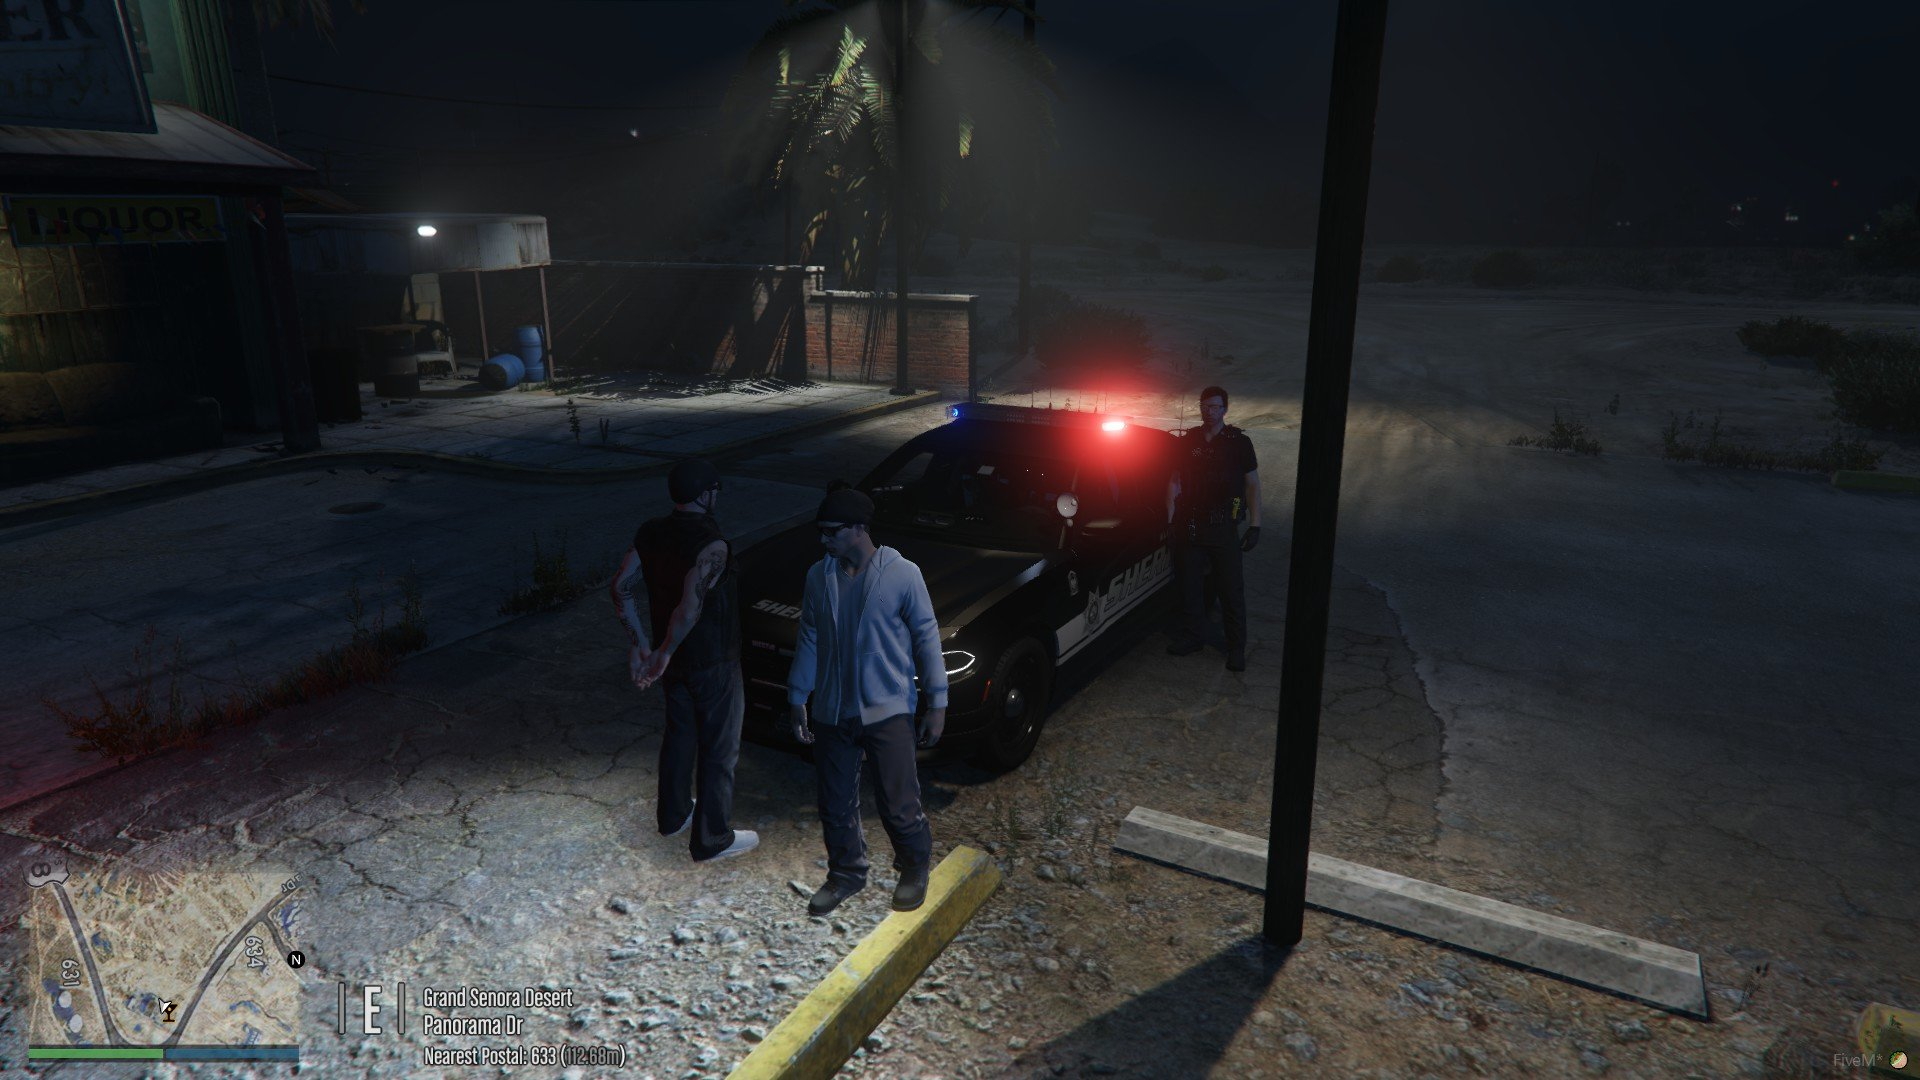 MWRP Arrested